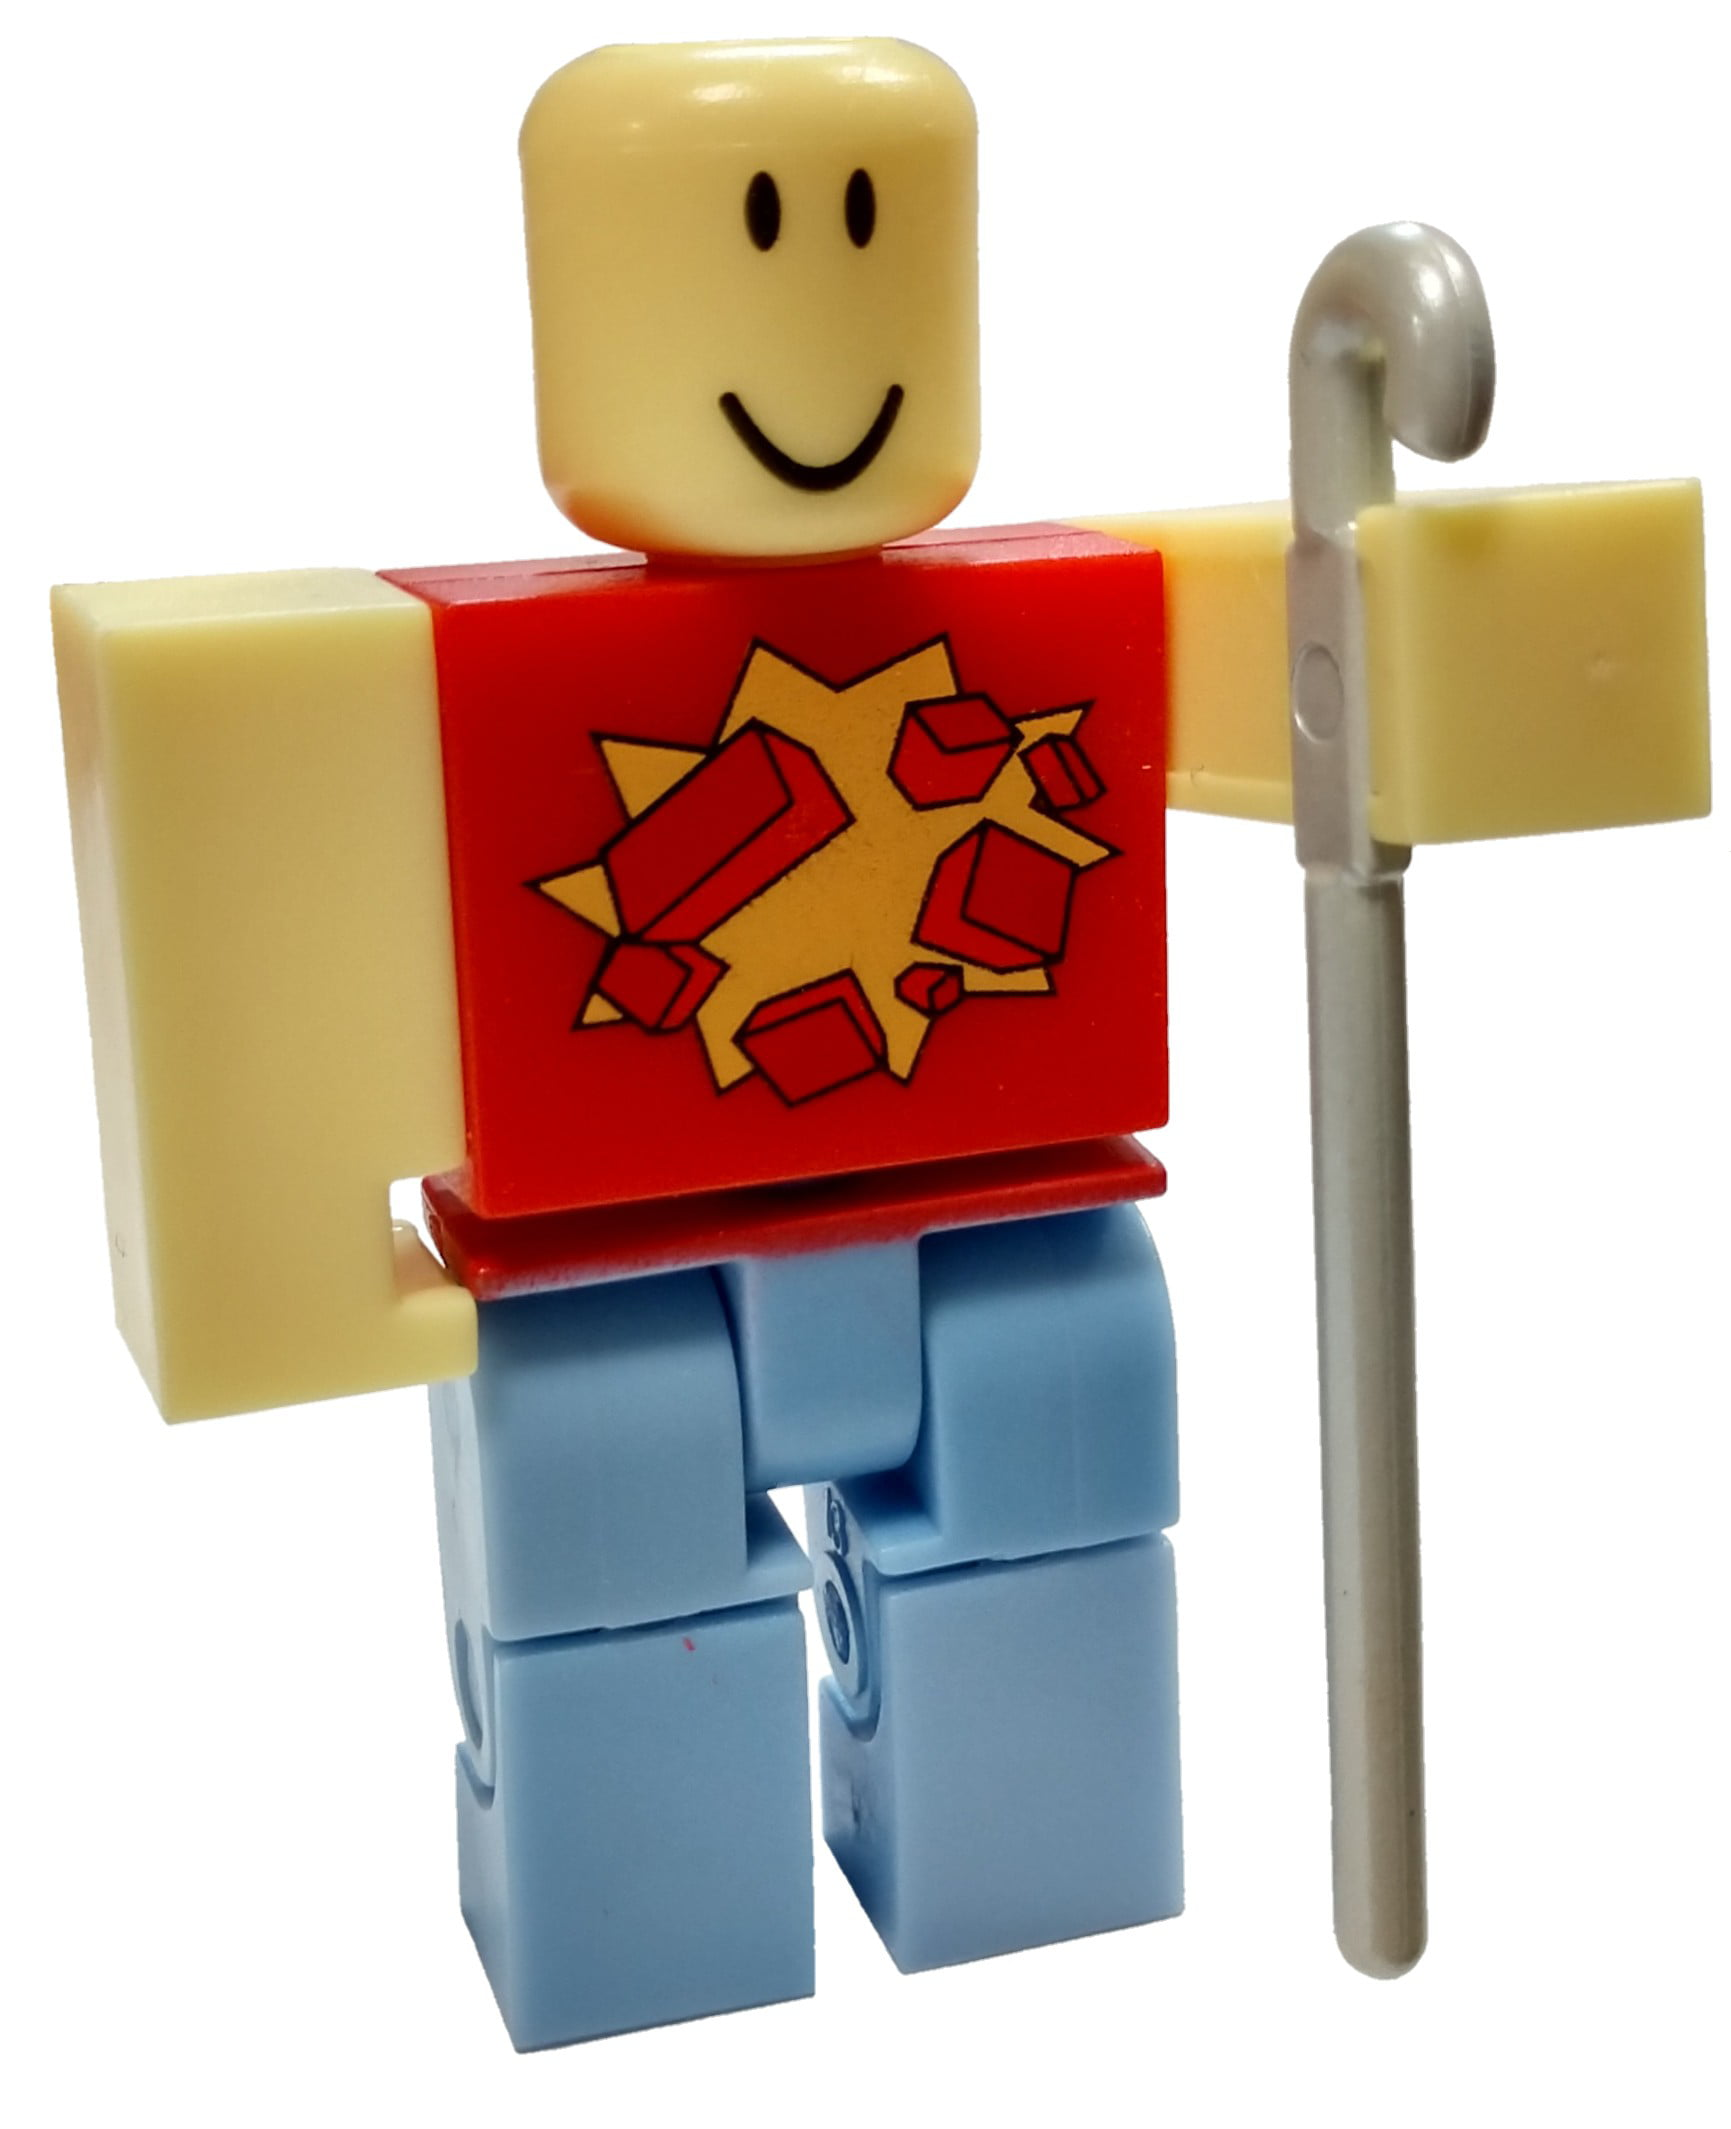 Roblox Red Series 4 Woodreviewer Mini Figure With Red Cube And